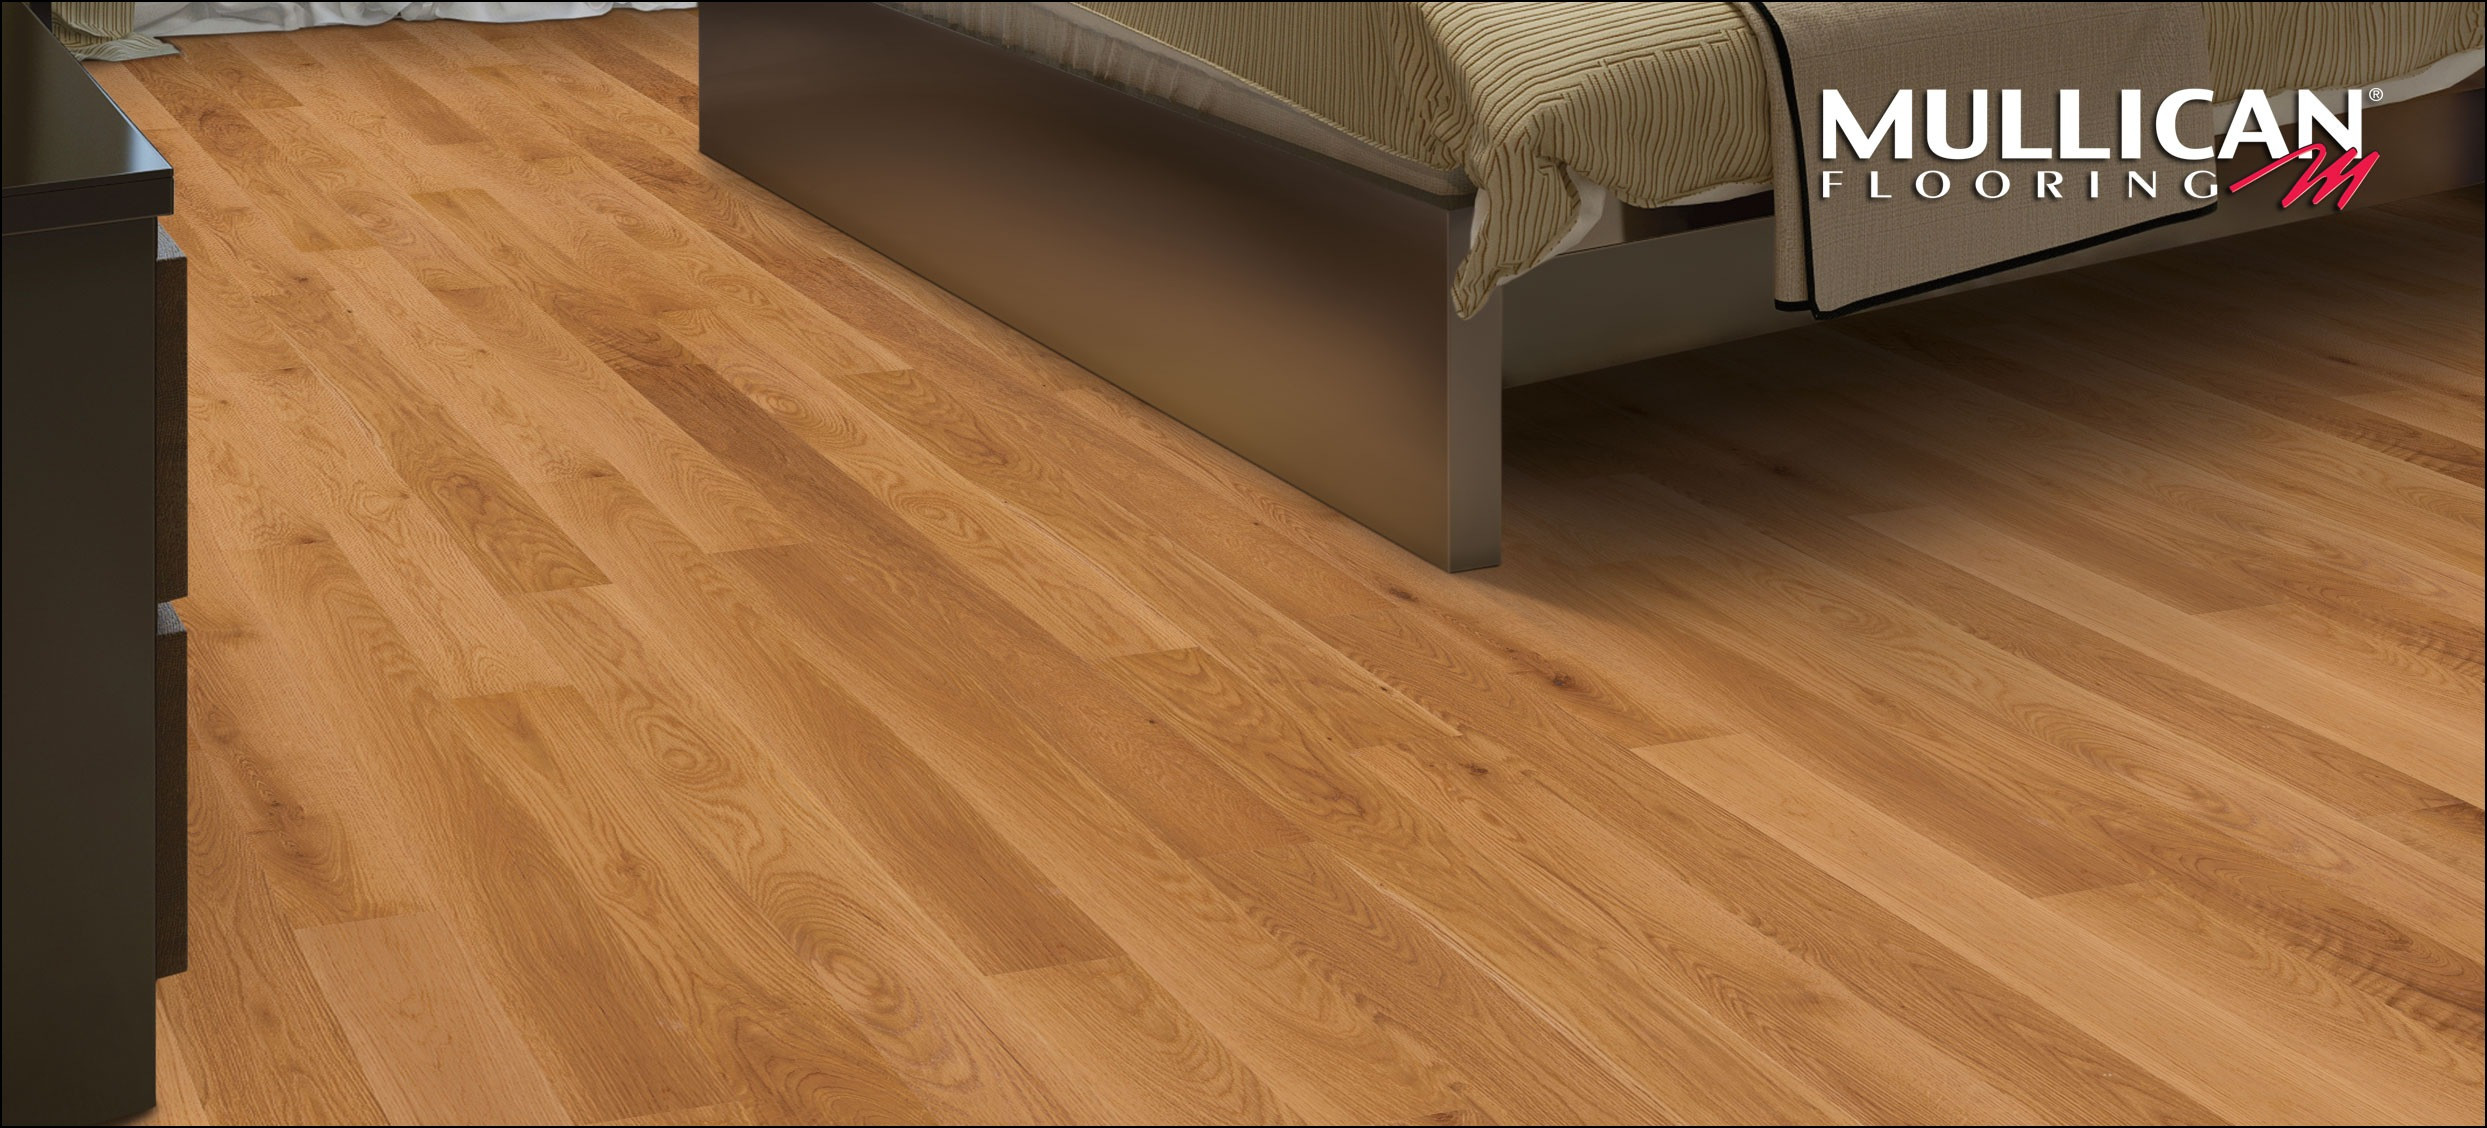 hardwood floor refinishing atlanta of hardwood flooring suppliers france flooring ideas with hardwood flooring installation san diego collection mullican flooring home of hardwood flooring installation san diego